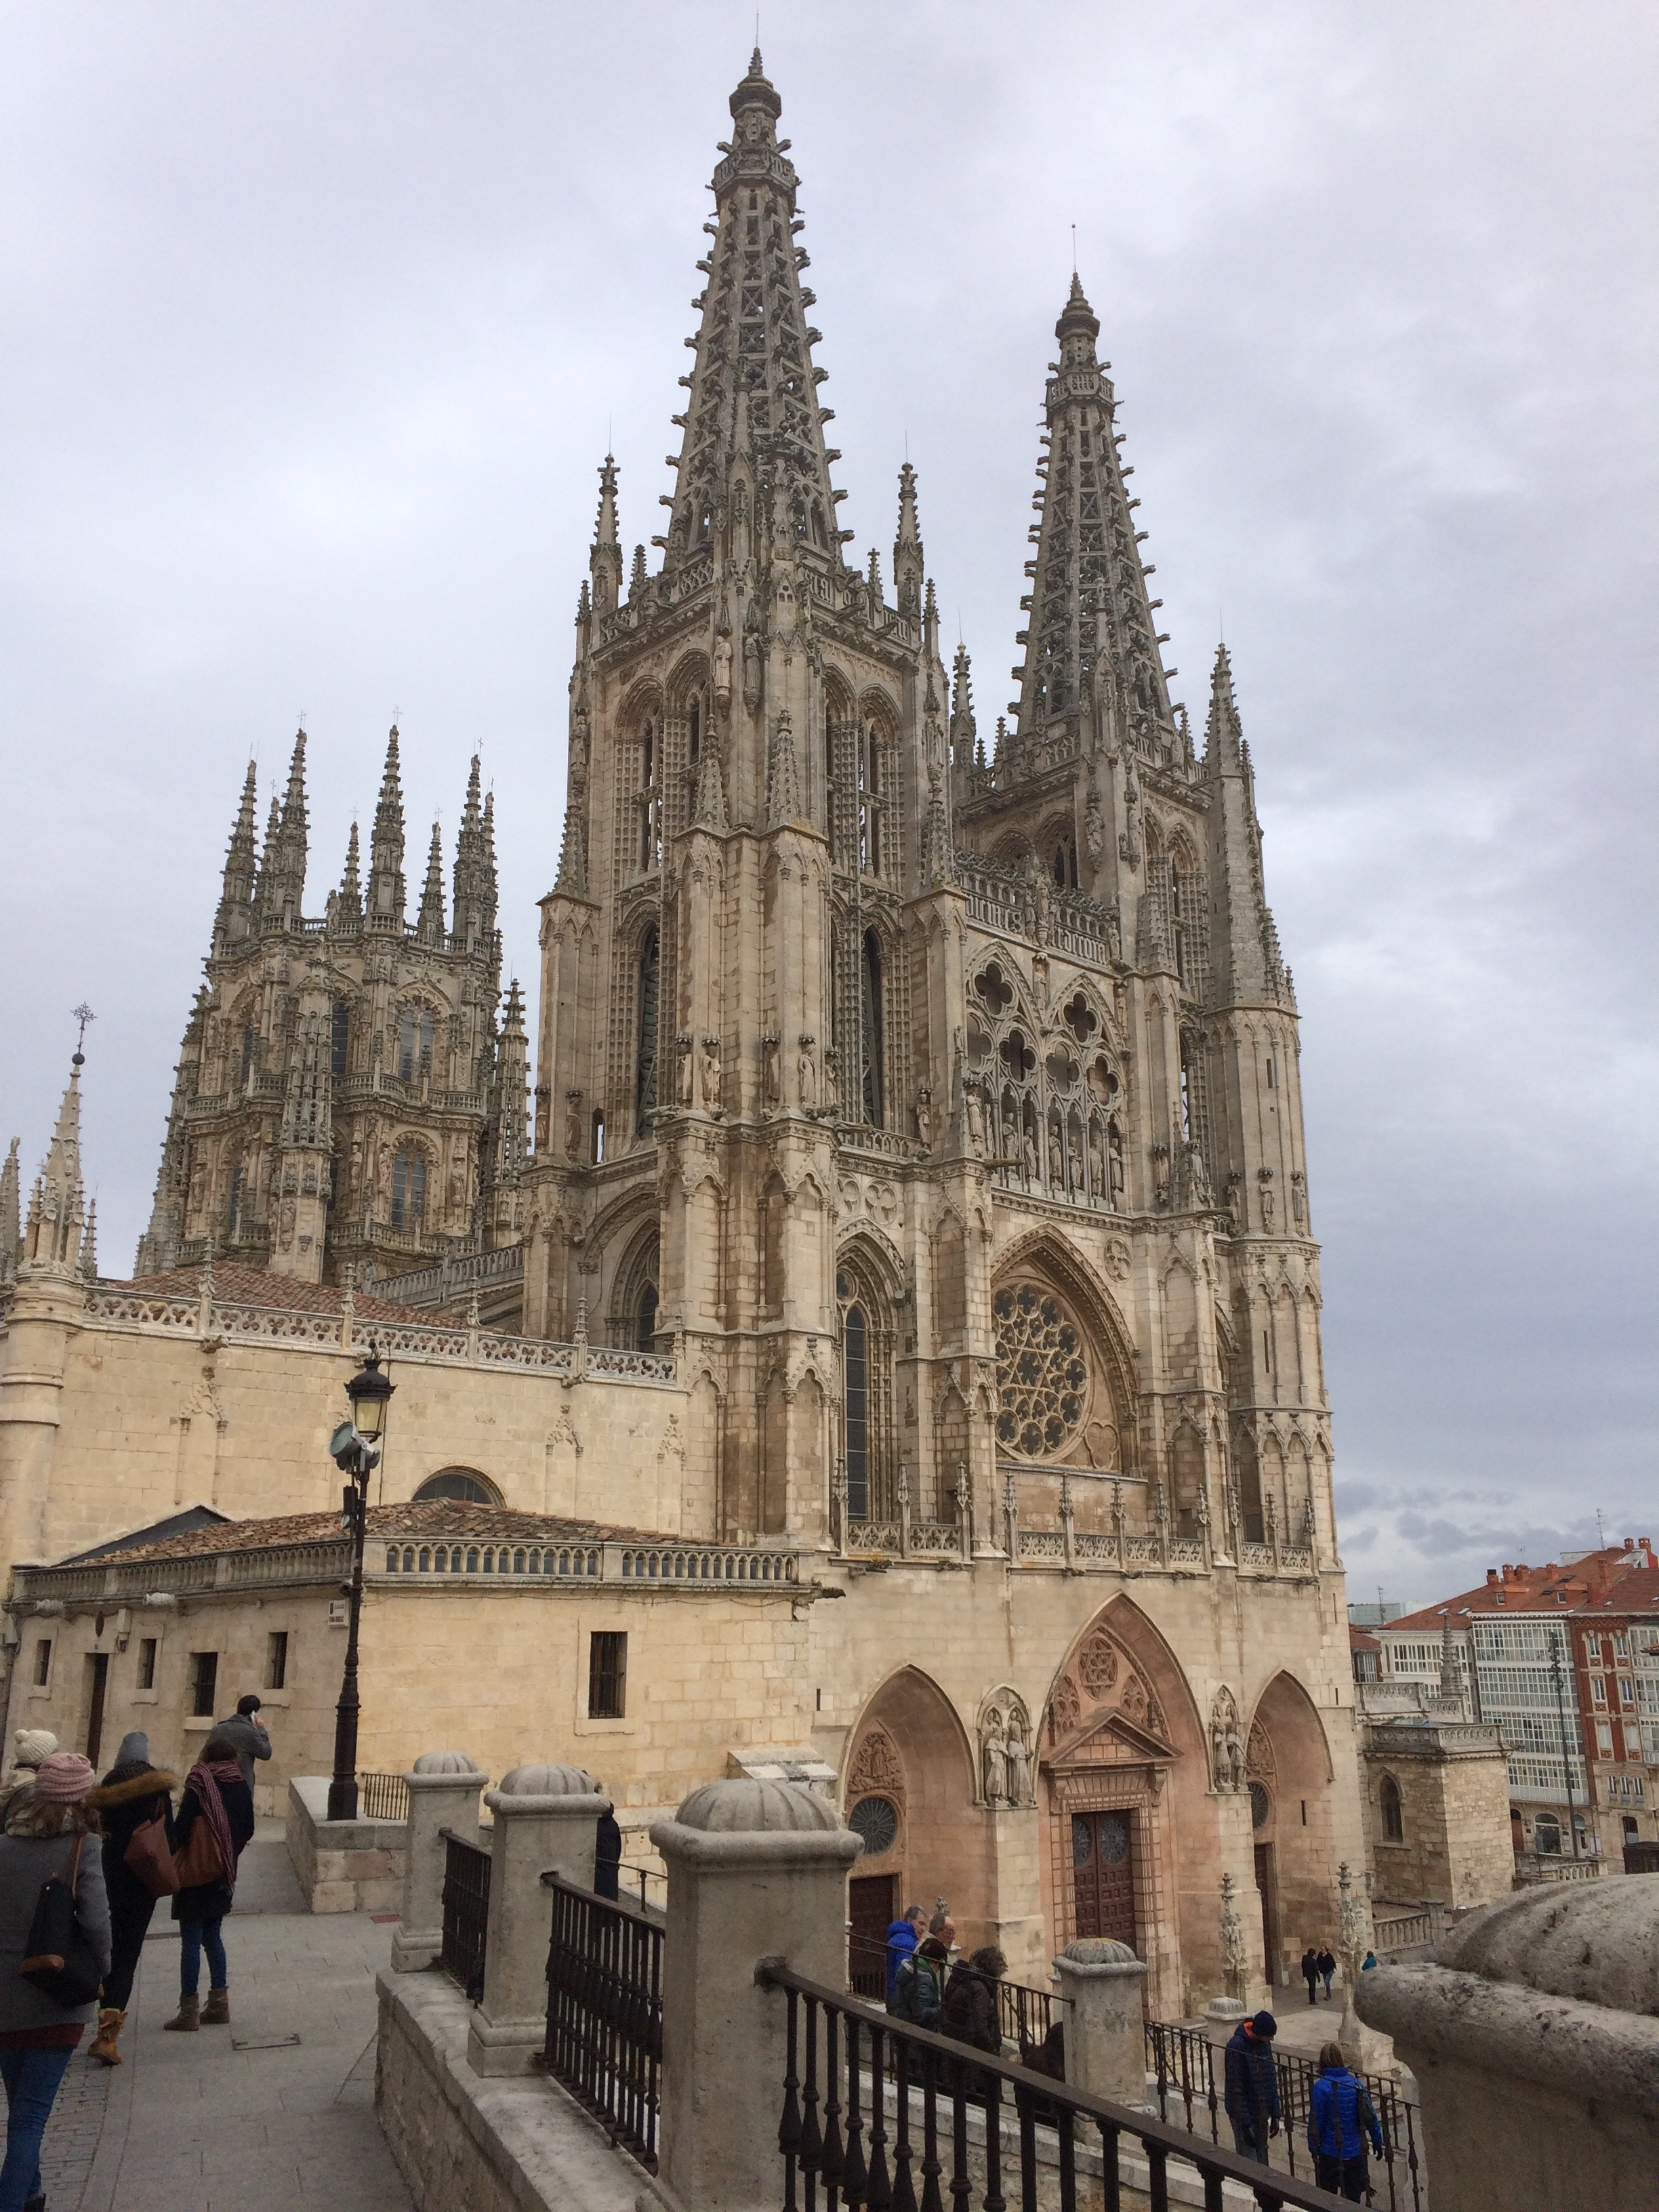 The Cathedral of Burgos.